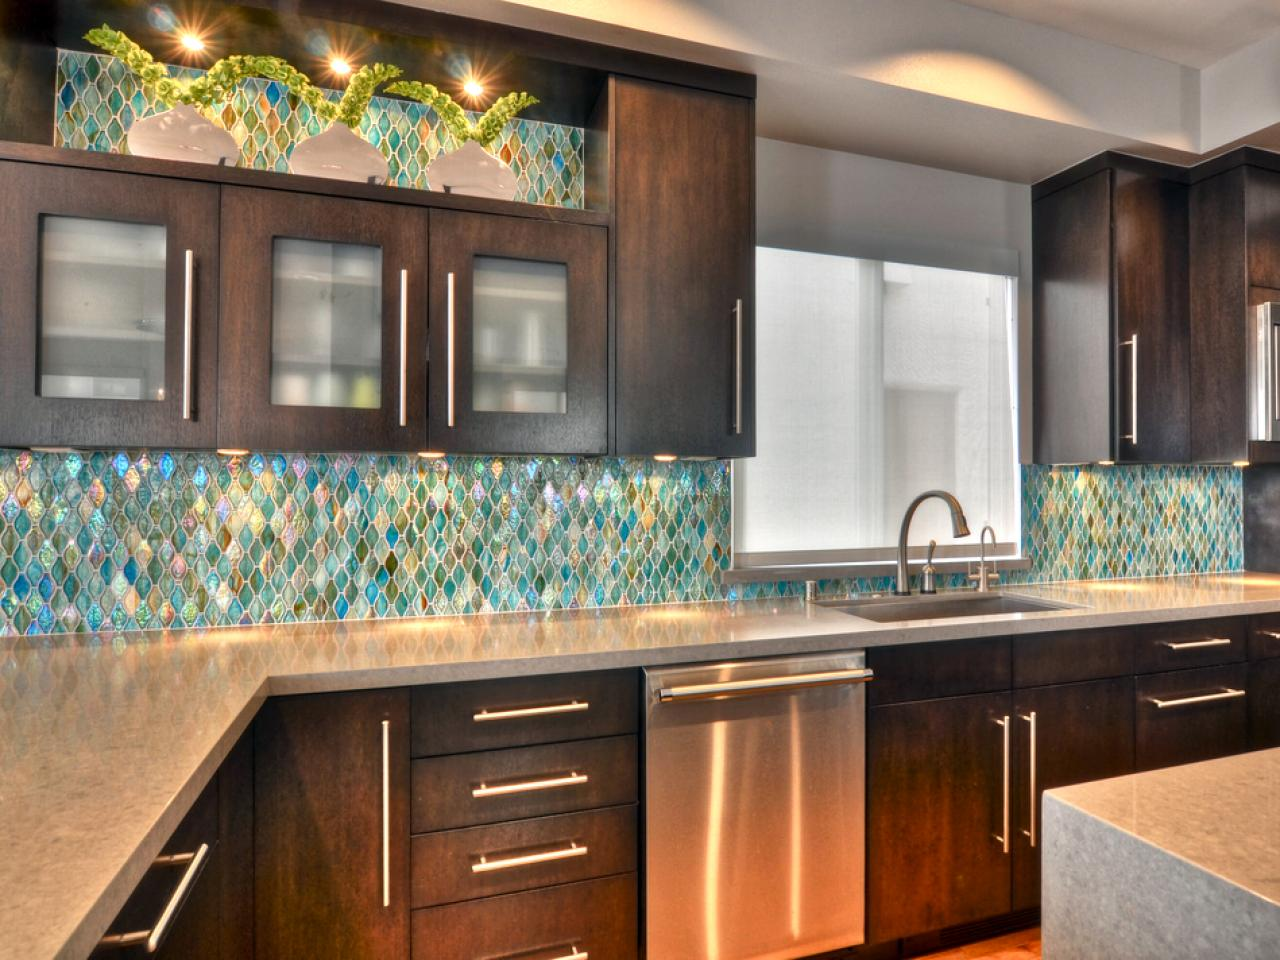 Kitchen Backsplash. Glass Tile Kitchen Backsplash. Backsplash N